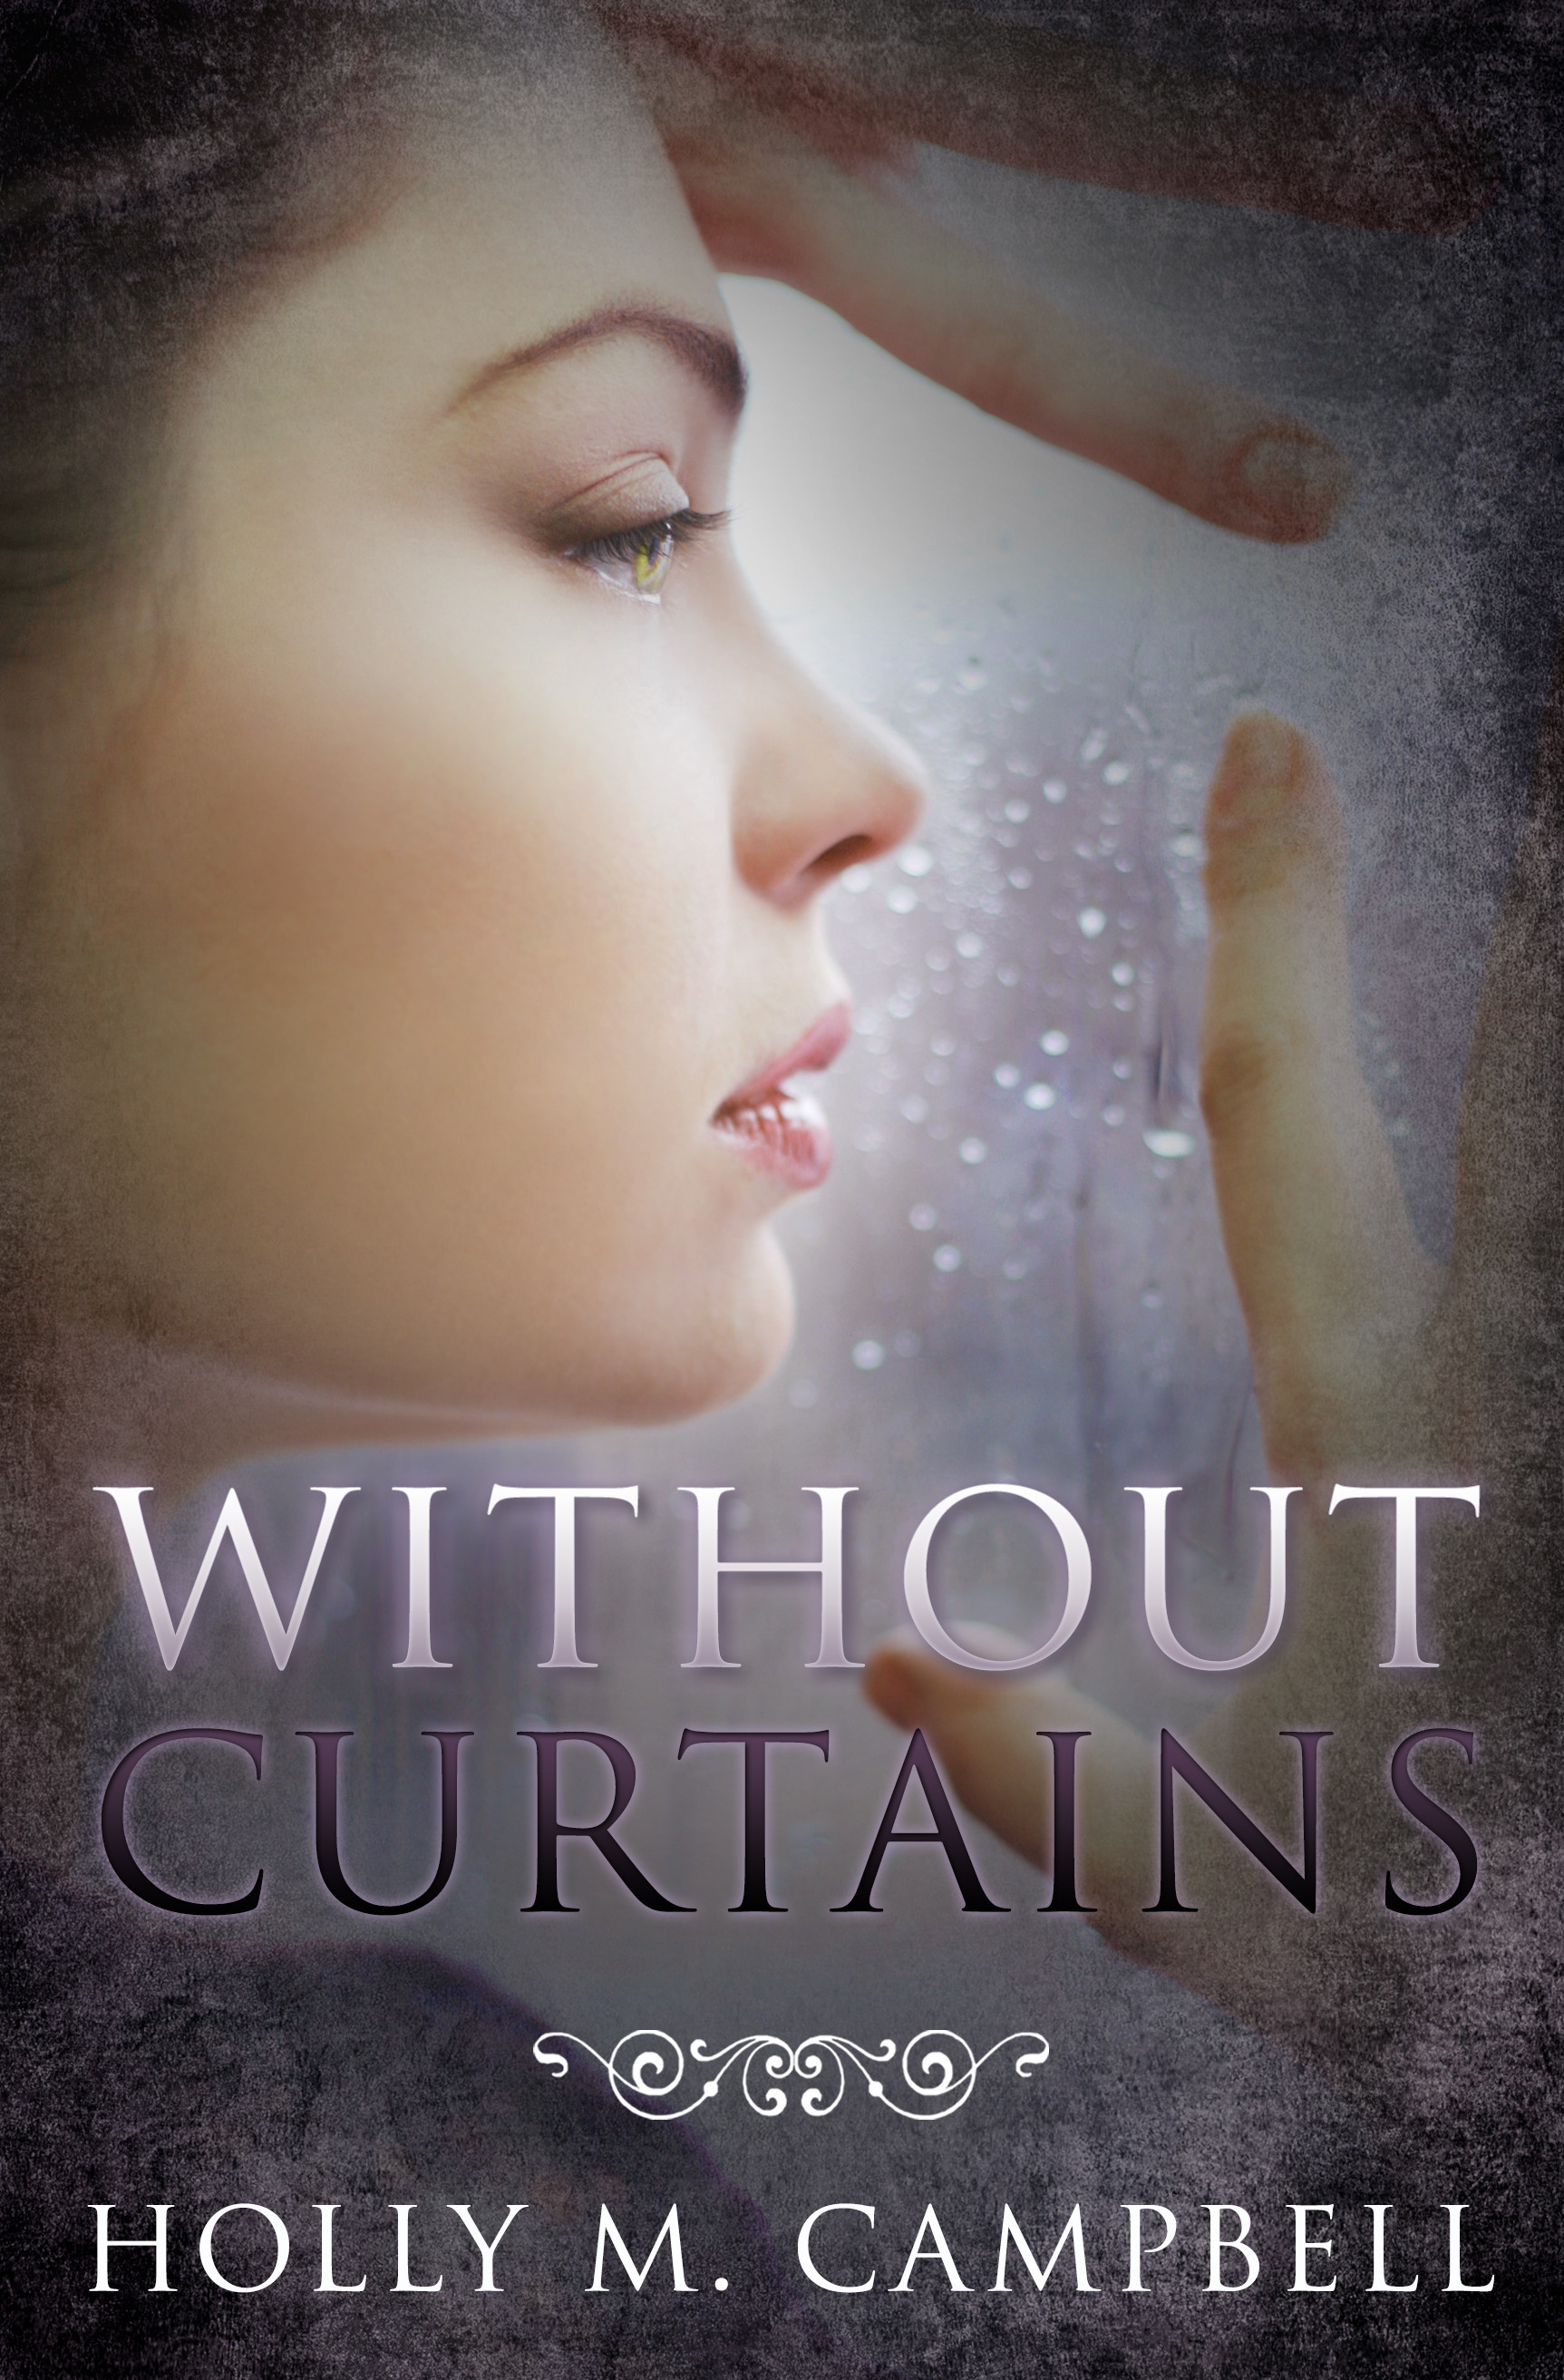 Without Curtains Final 6